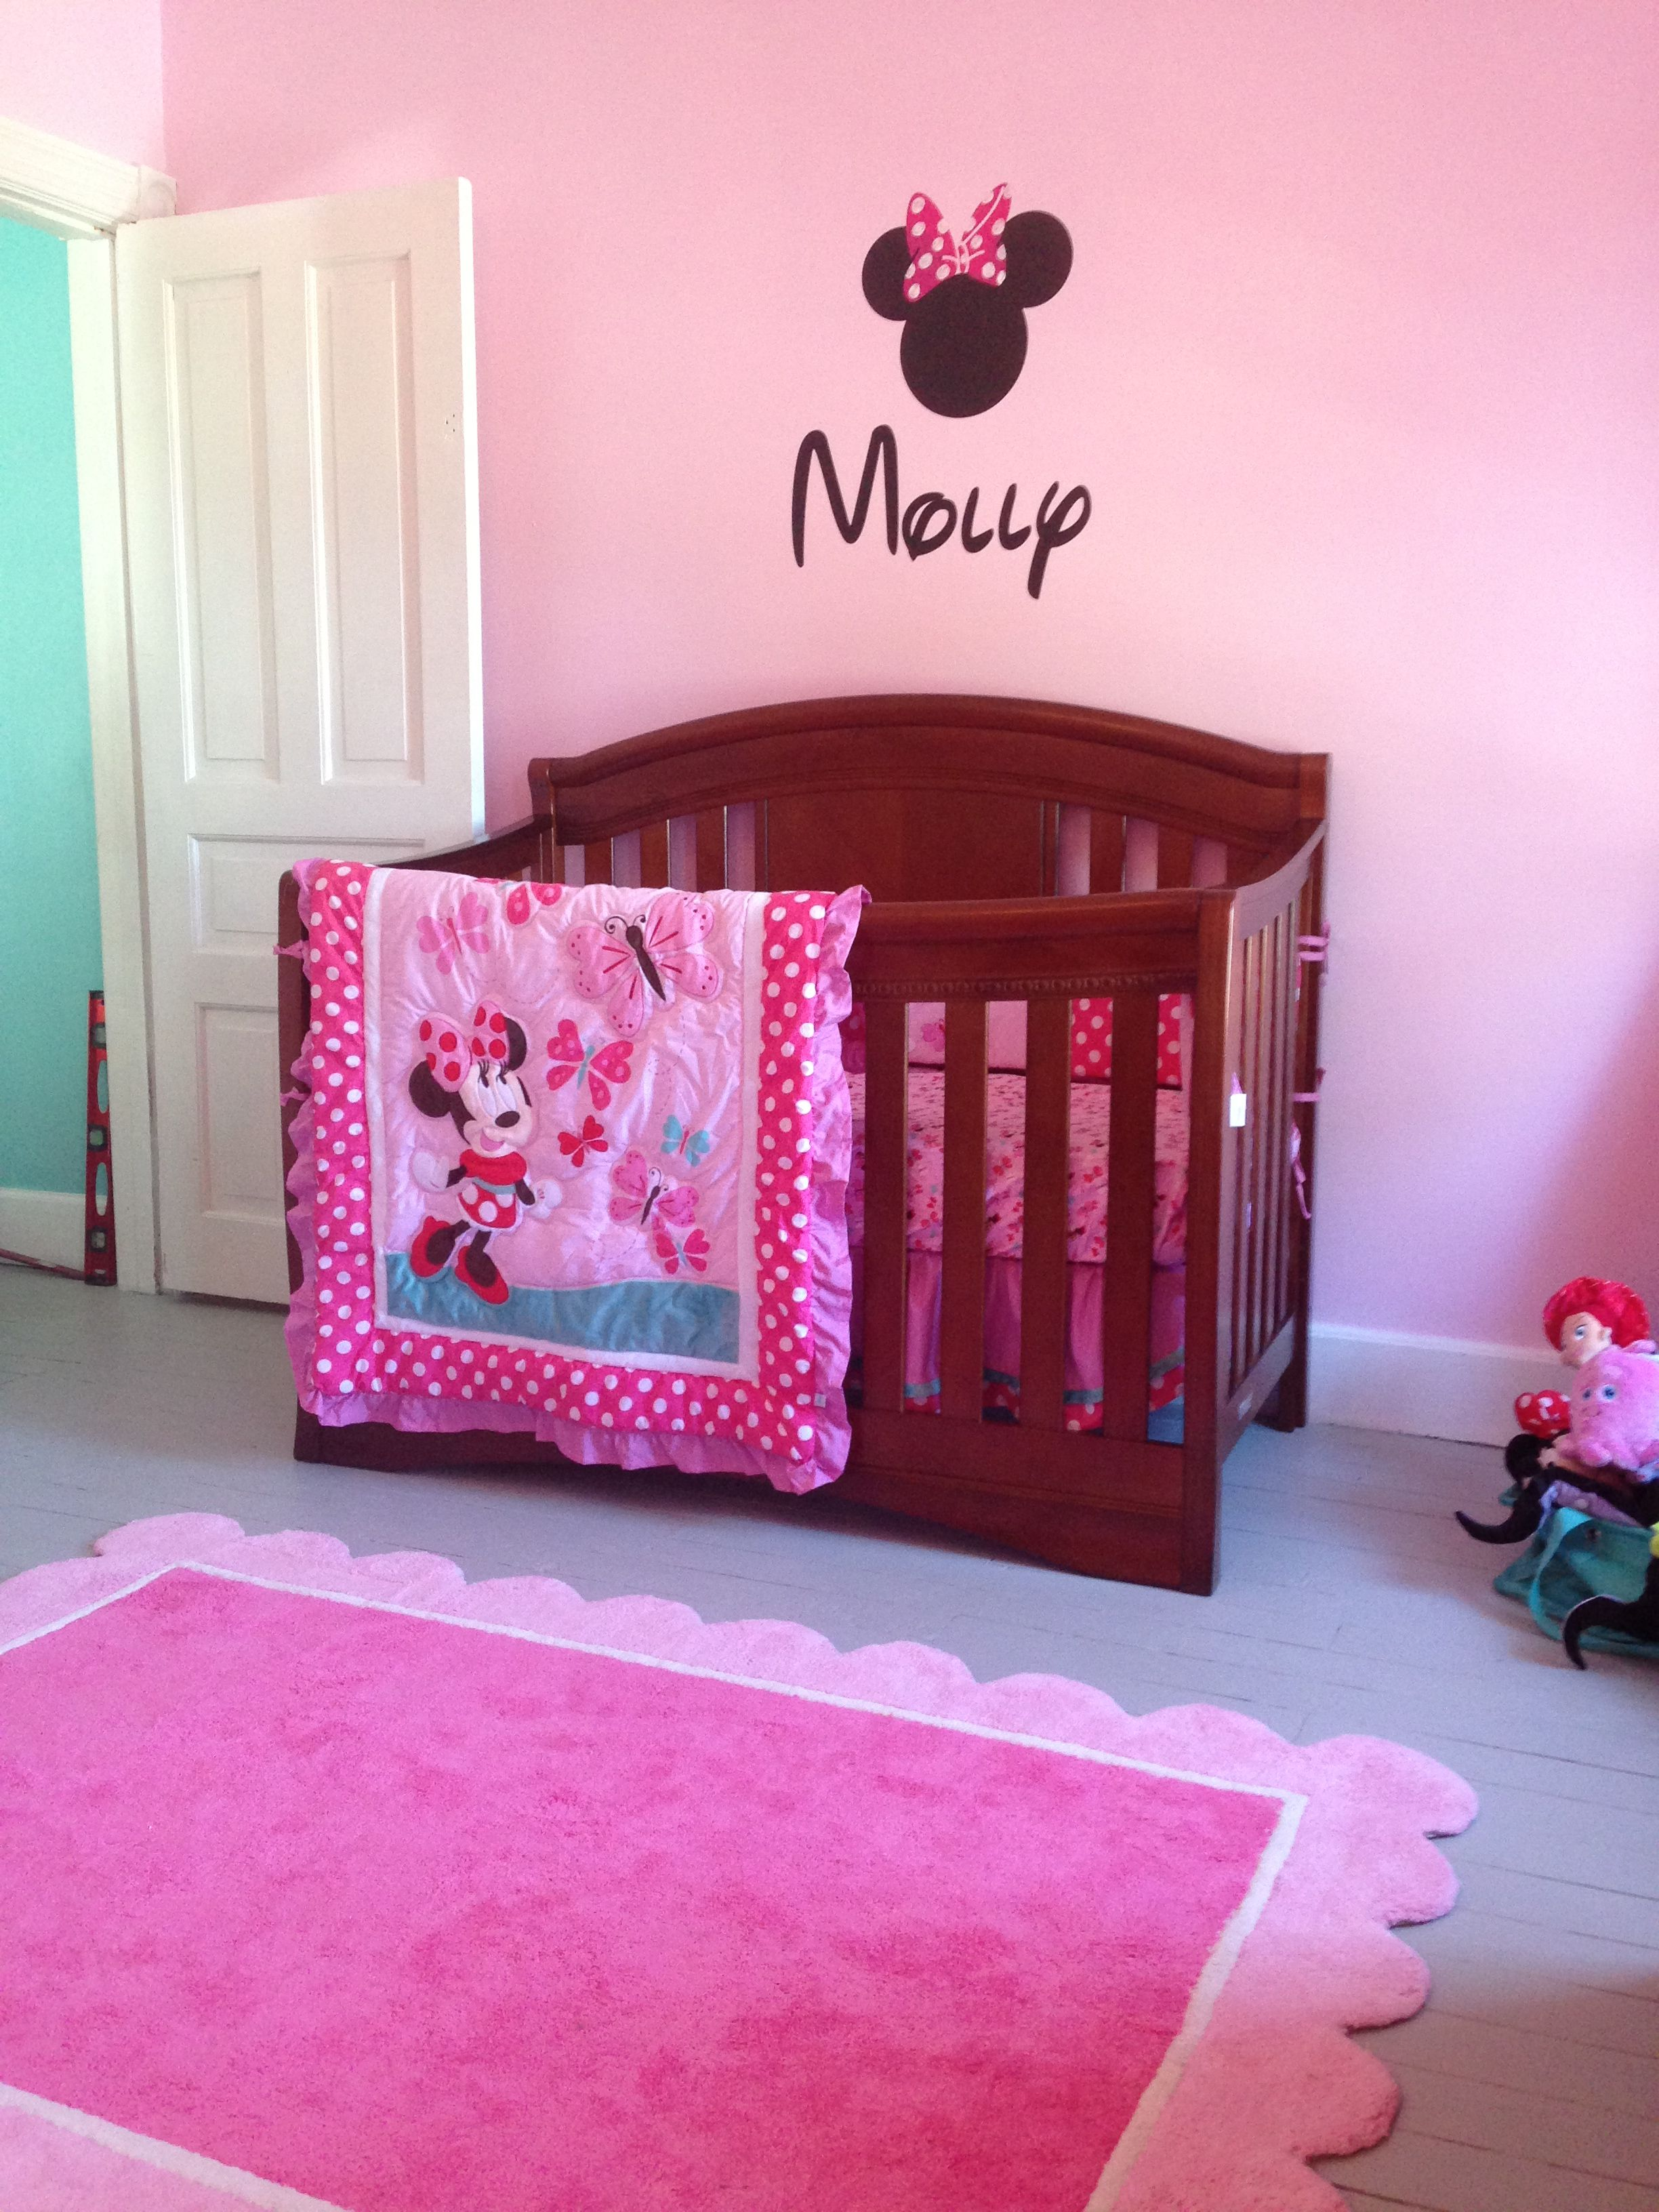 Chambre Complete Minnie Minnie Mouse So Want To Do This When The Girls Have To Share A